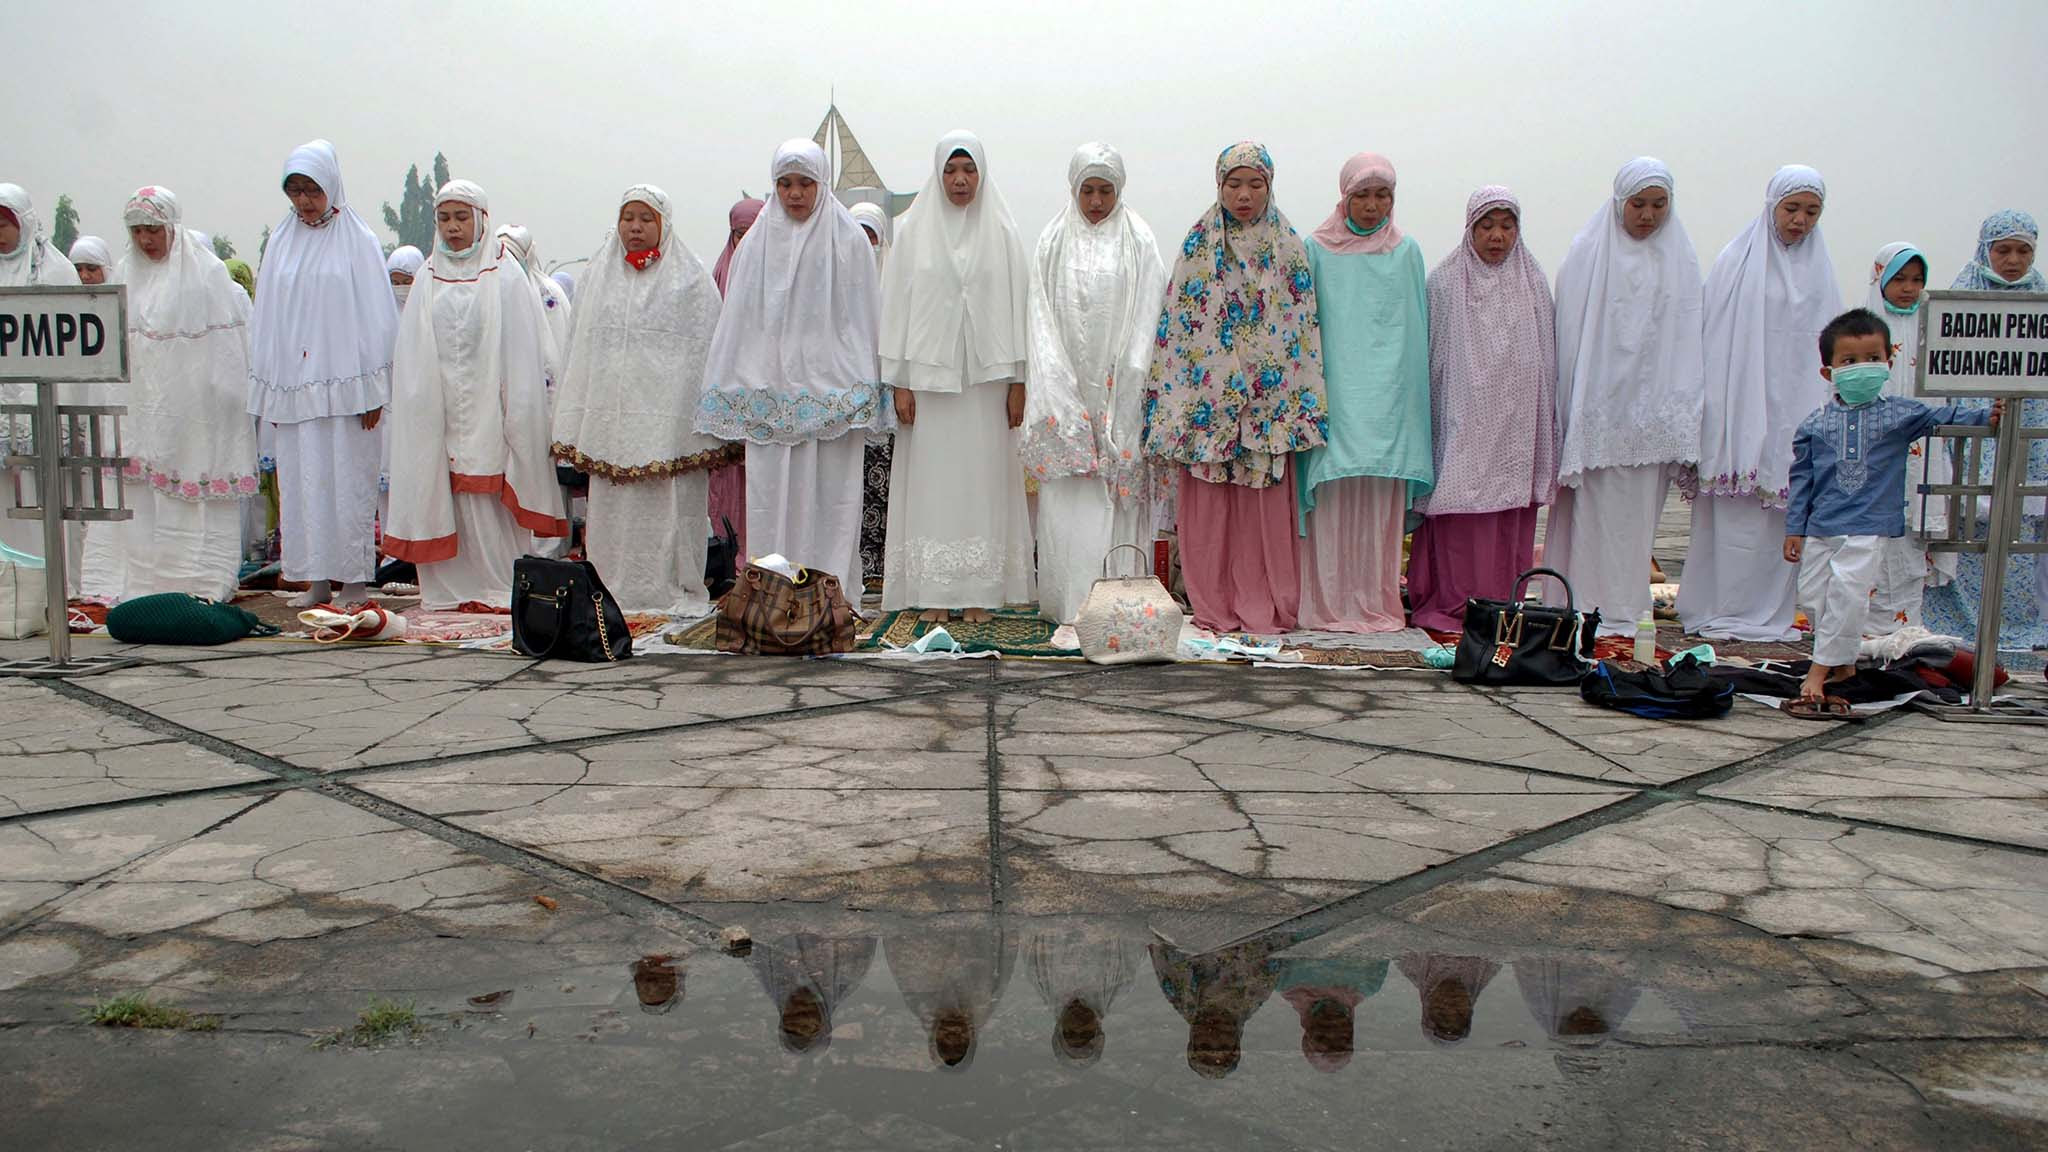 Muslim women pray for rain to put out the fires which enveloped the region in Pekanbaru, Riau province